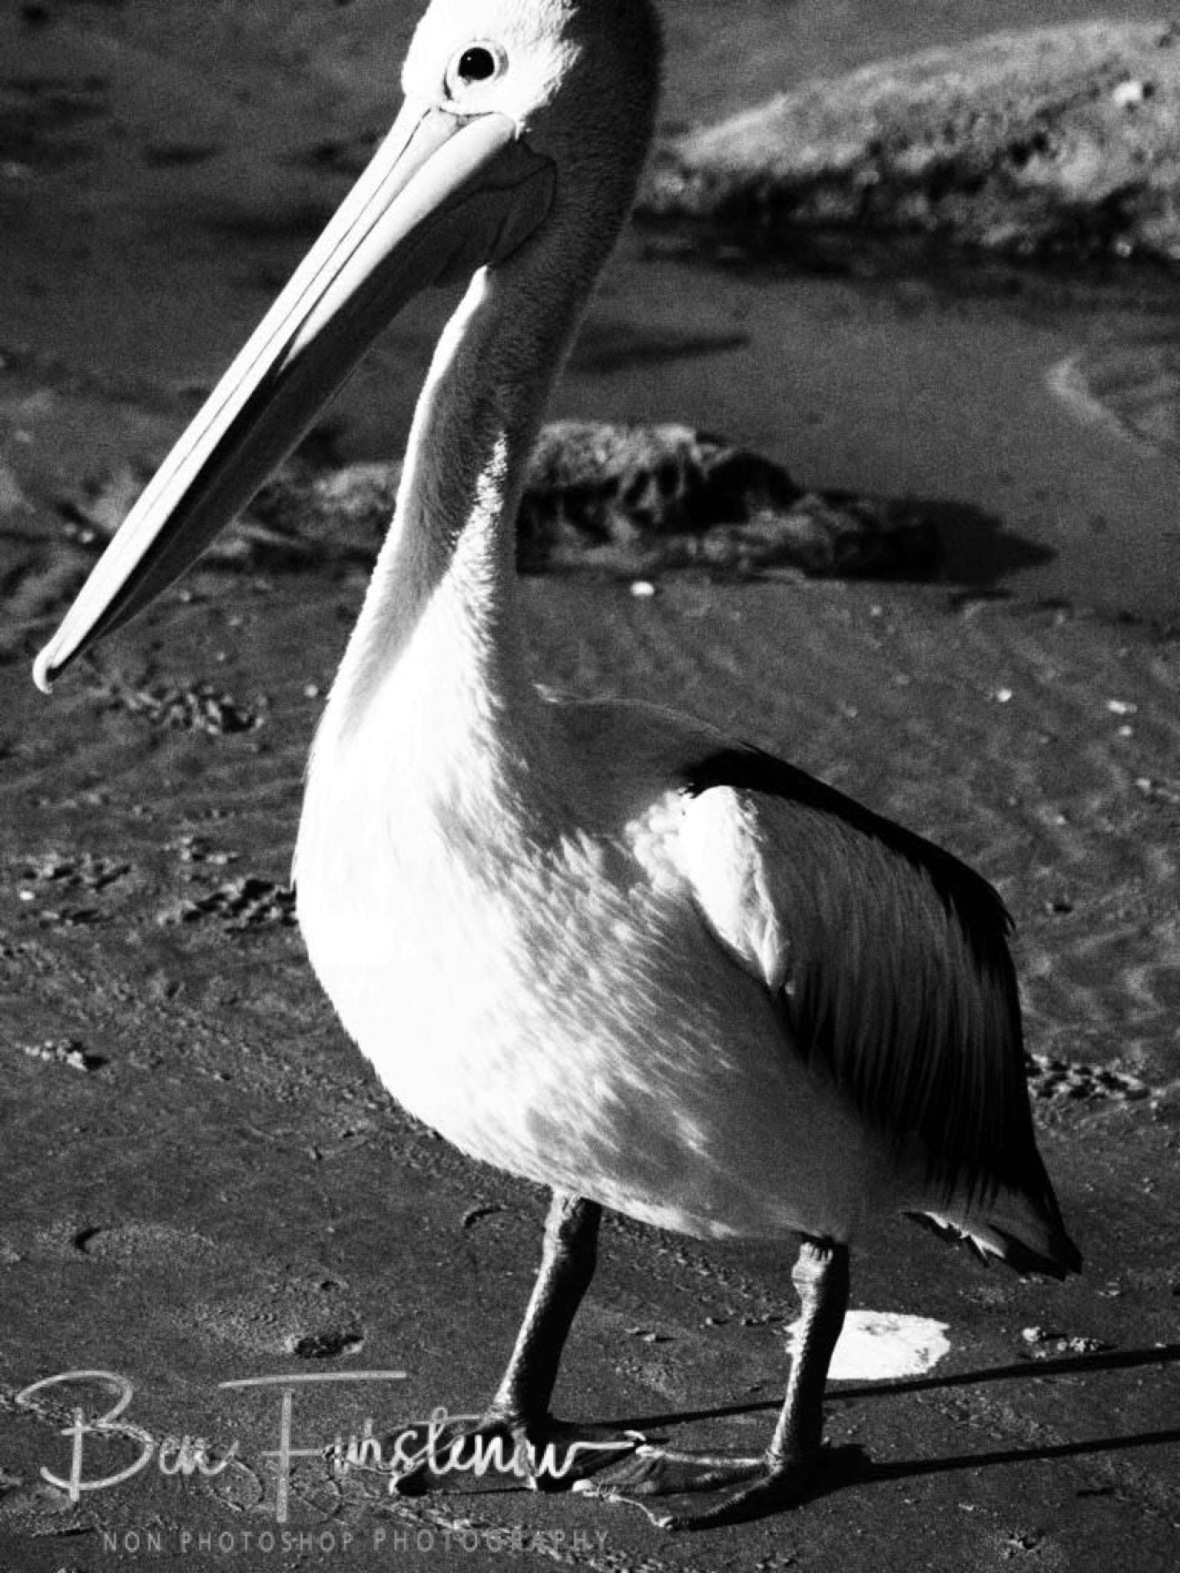 Black and white @ Woody Head, Northern New South Wales, Australia